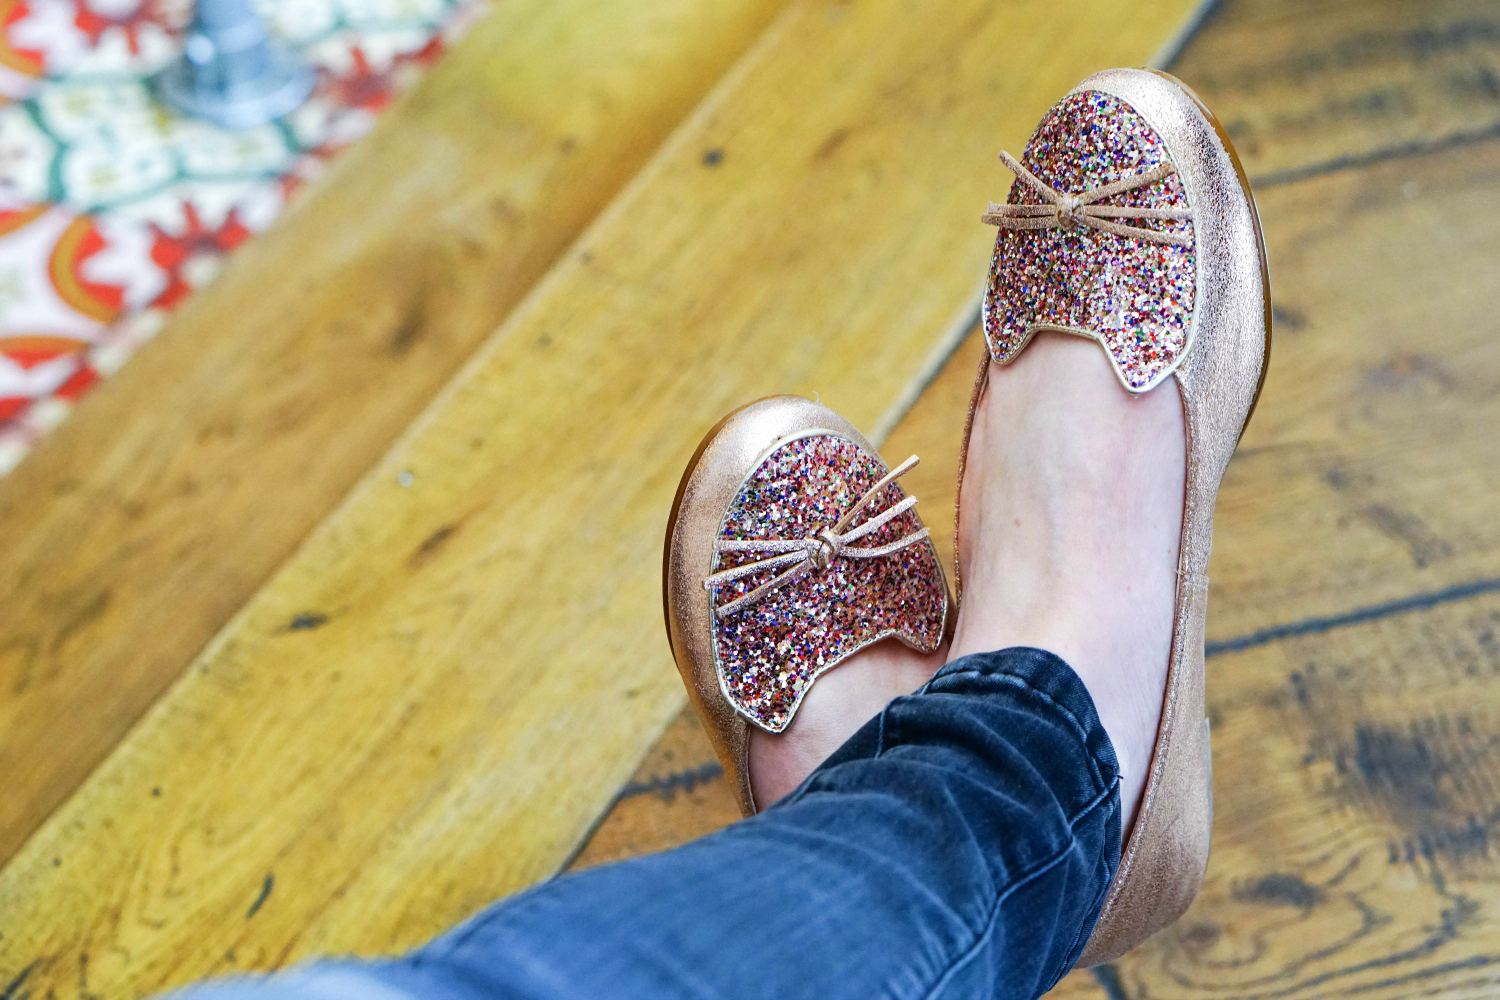 I take cats on coffee dates - cat ballet flats from Boden